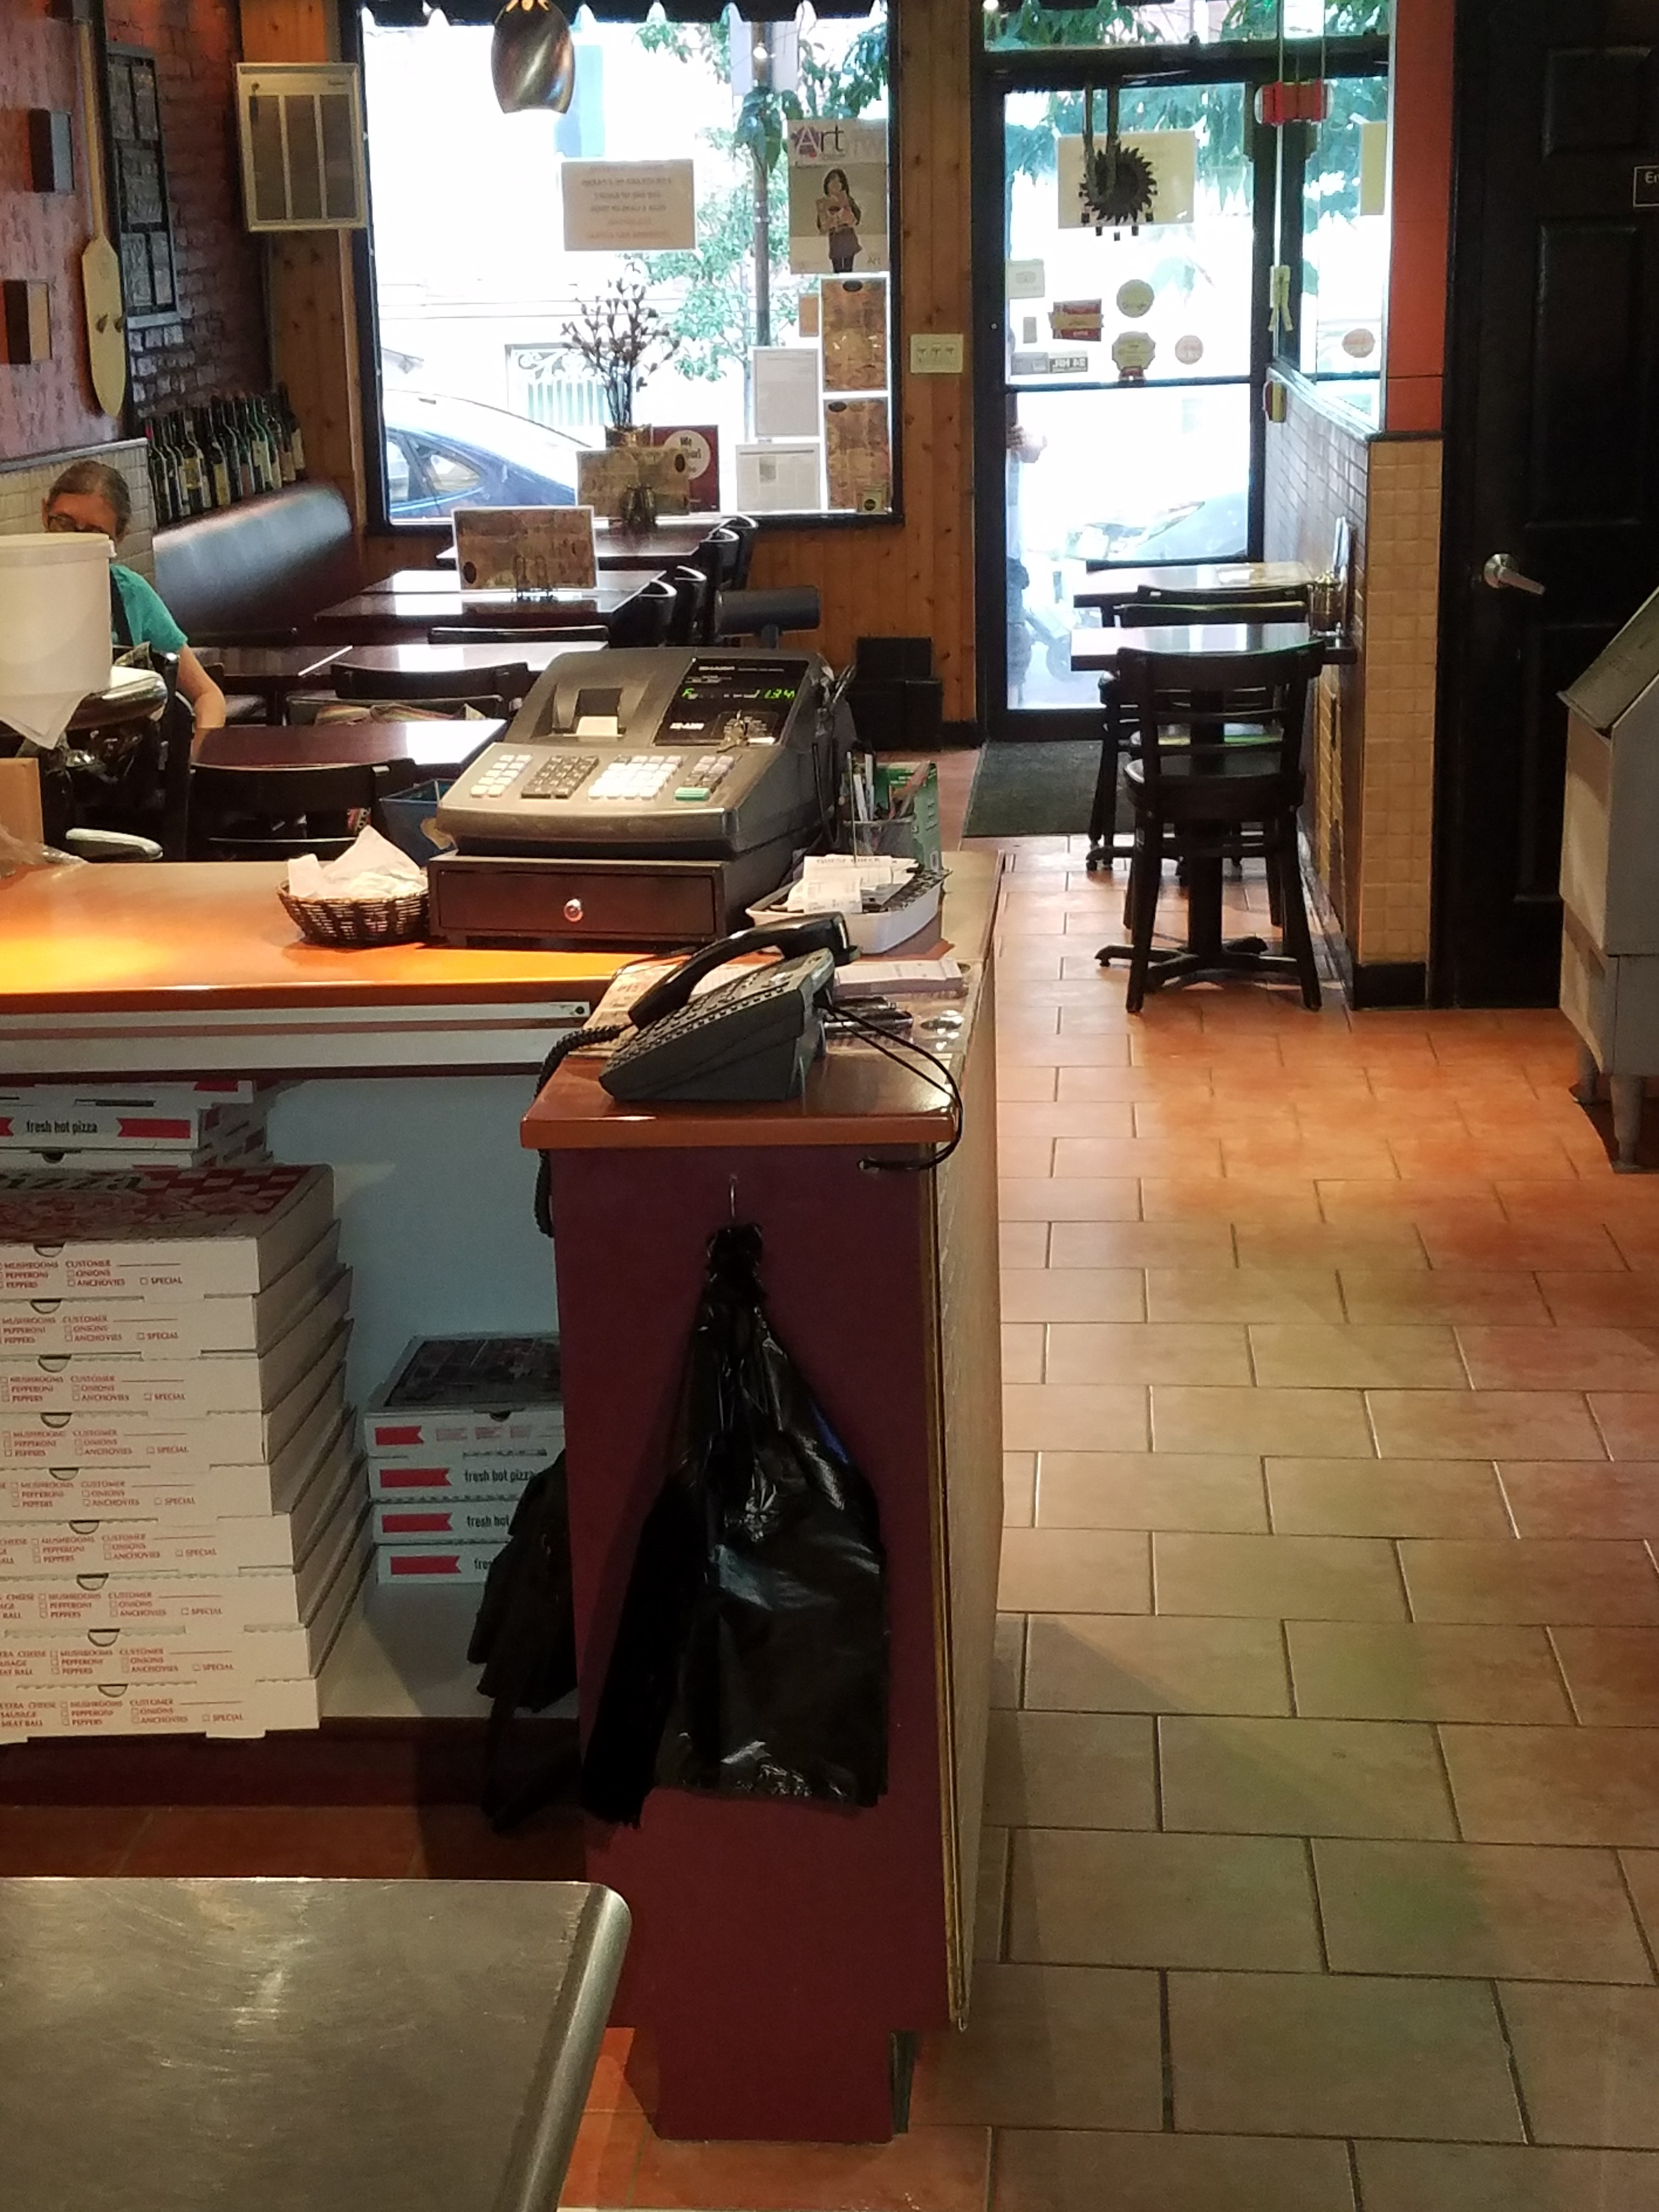 La Cucina Restaurant Hanover Pa Italian Food Delivery Best Restaurants Near You Grubhub